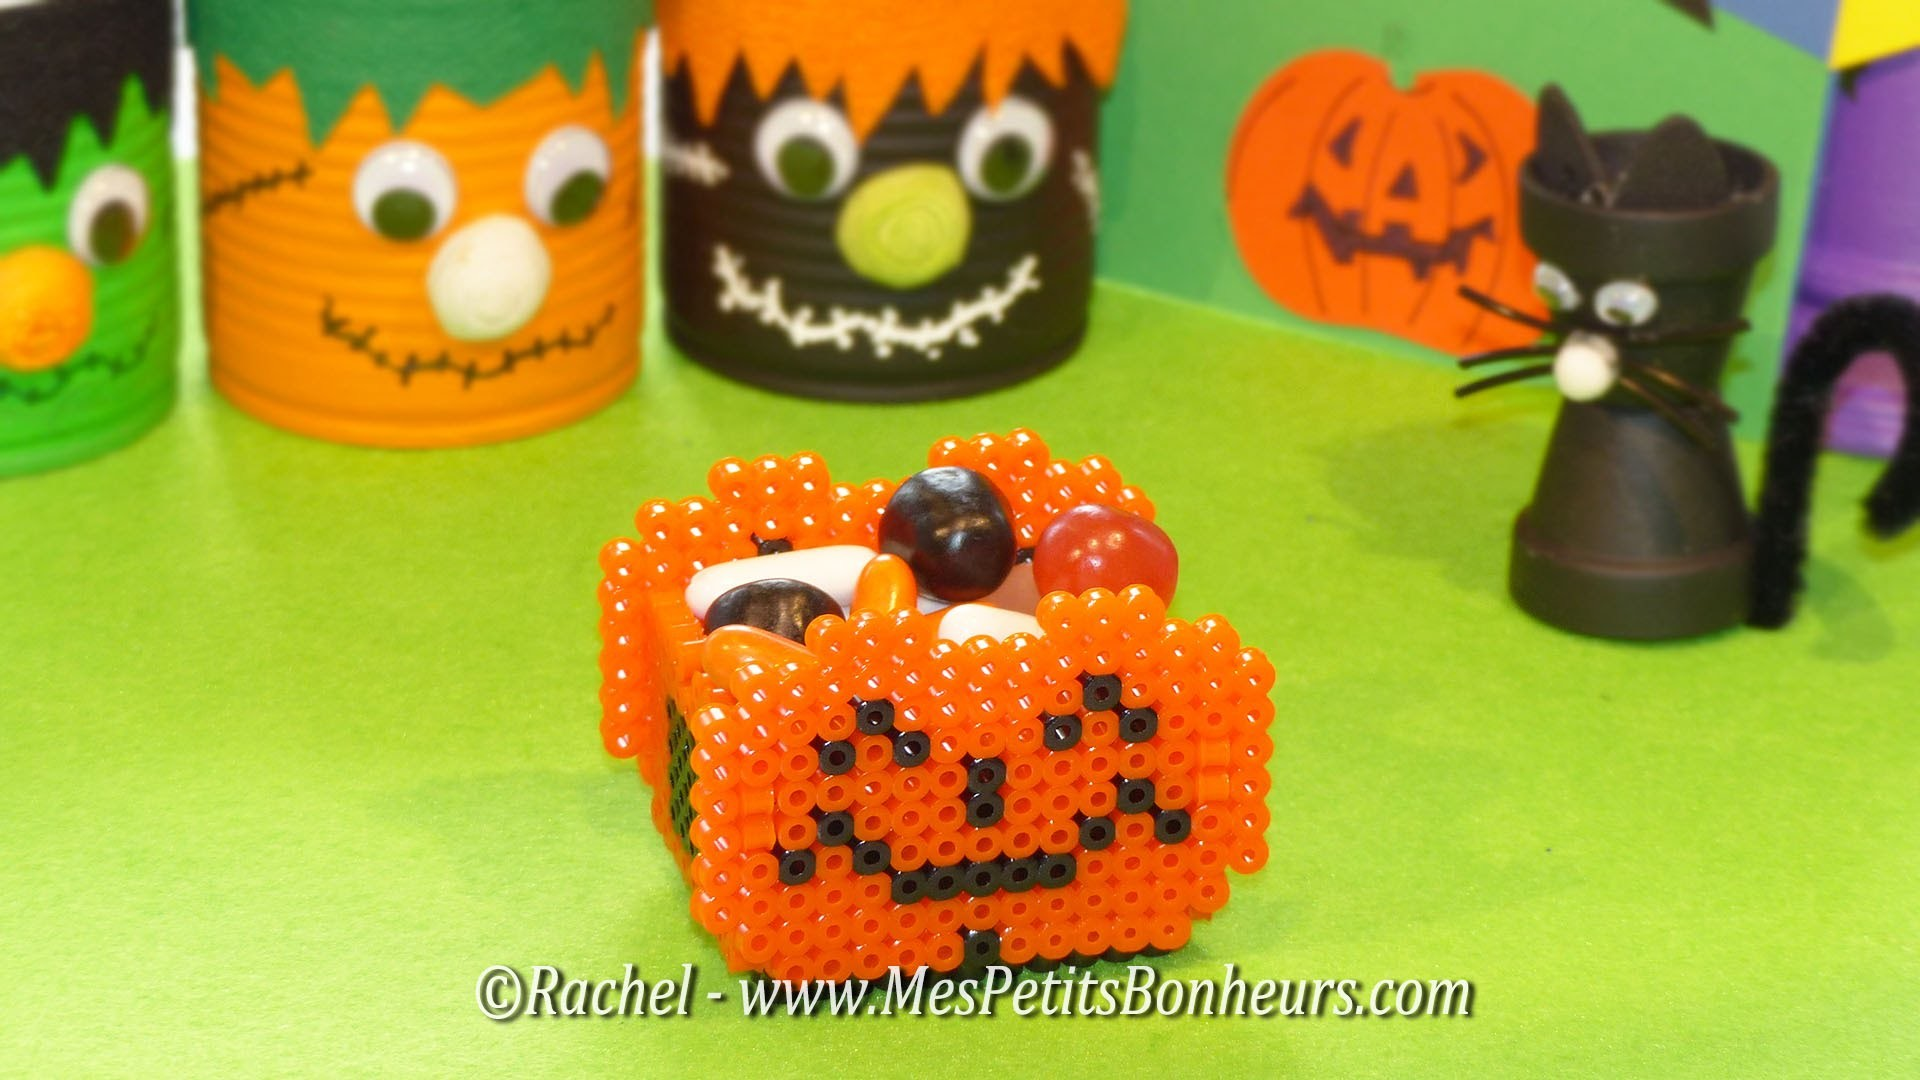 tuto bricolage halloween panier citrouille en perles hama. Black Bedroom Furniture Sets. Home Design Ideas